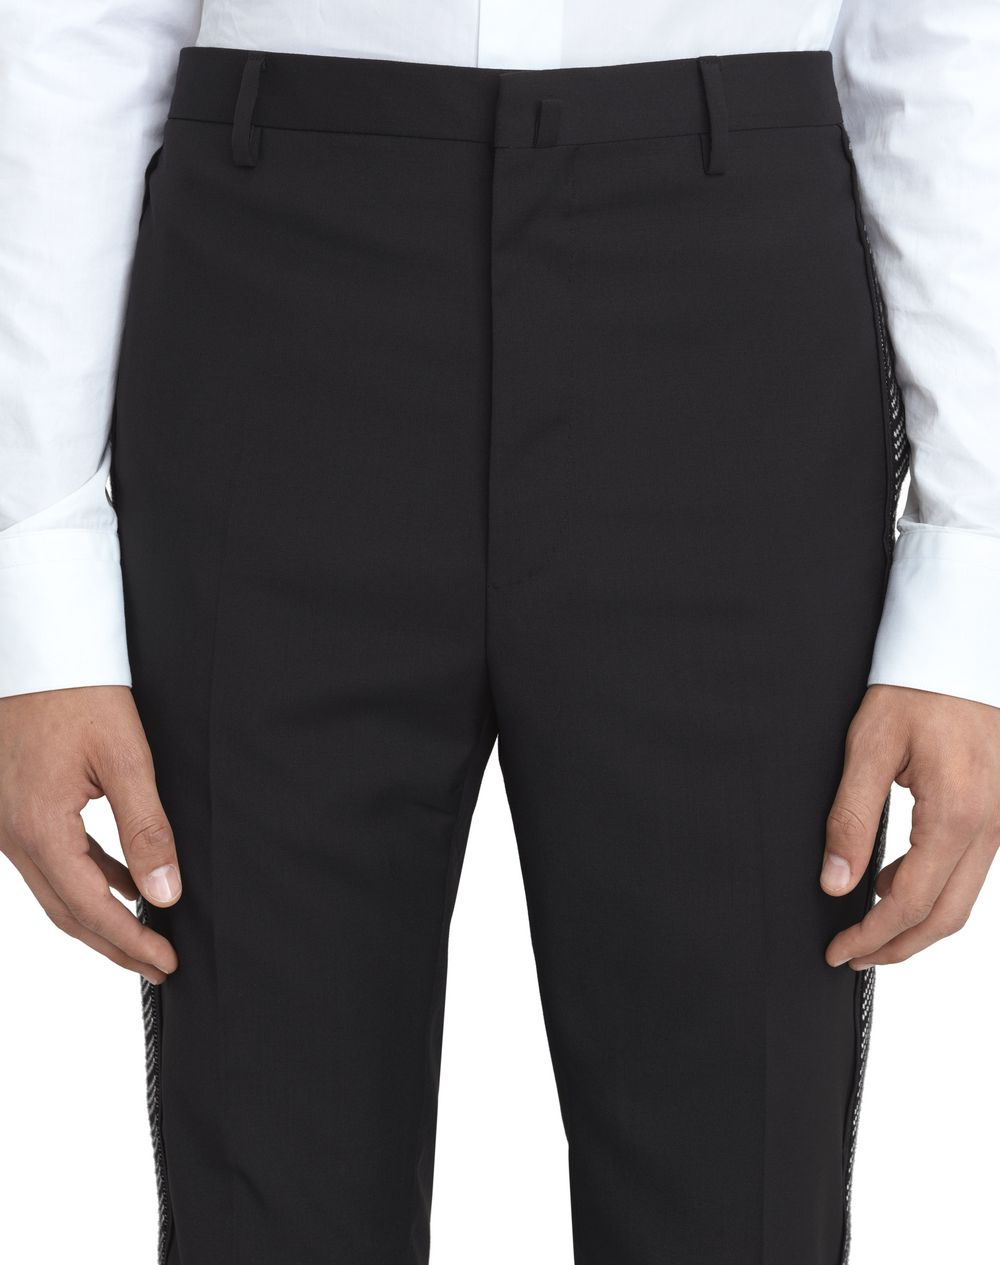 BLACK TROUSERS WITH JACQUARD BANDS  - Lanvin